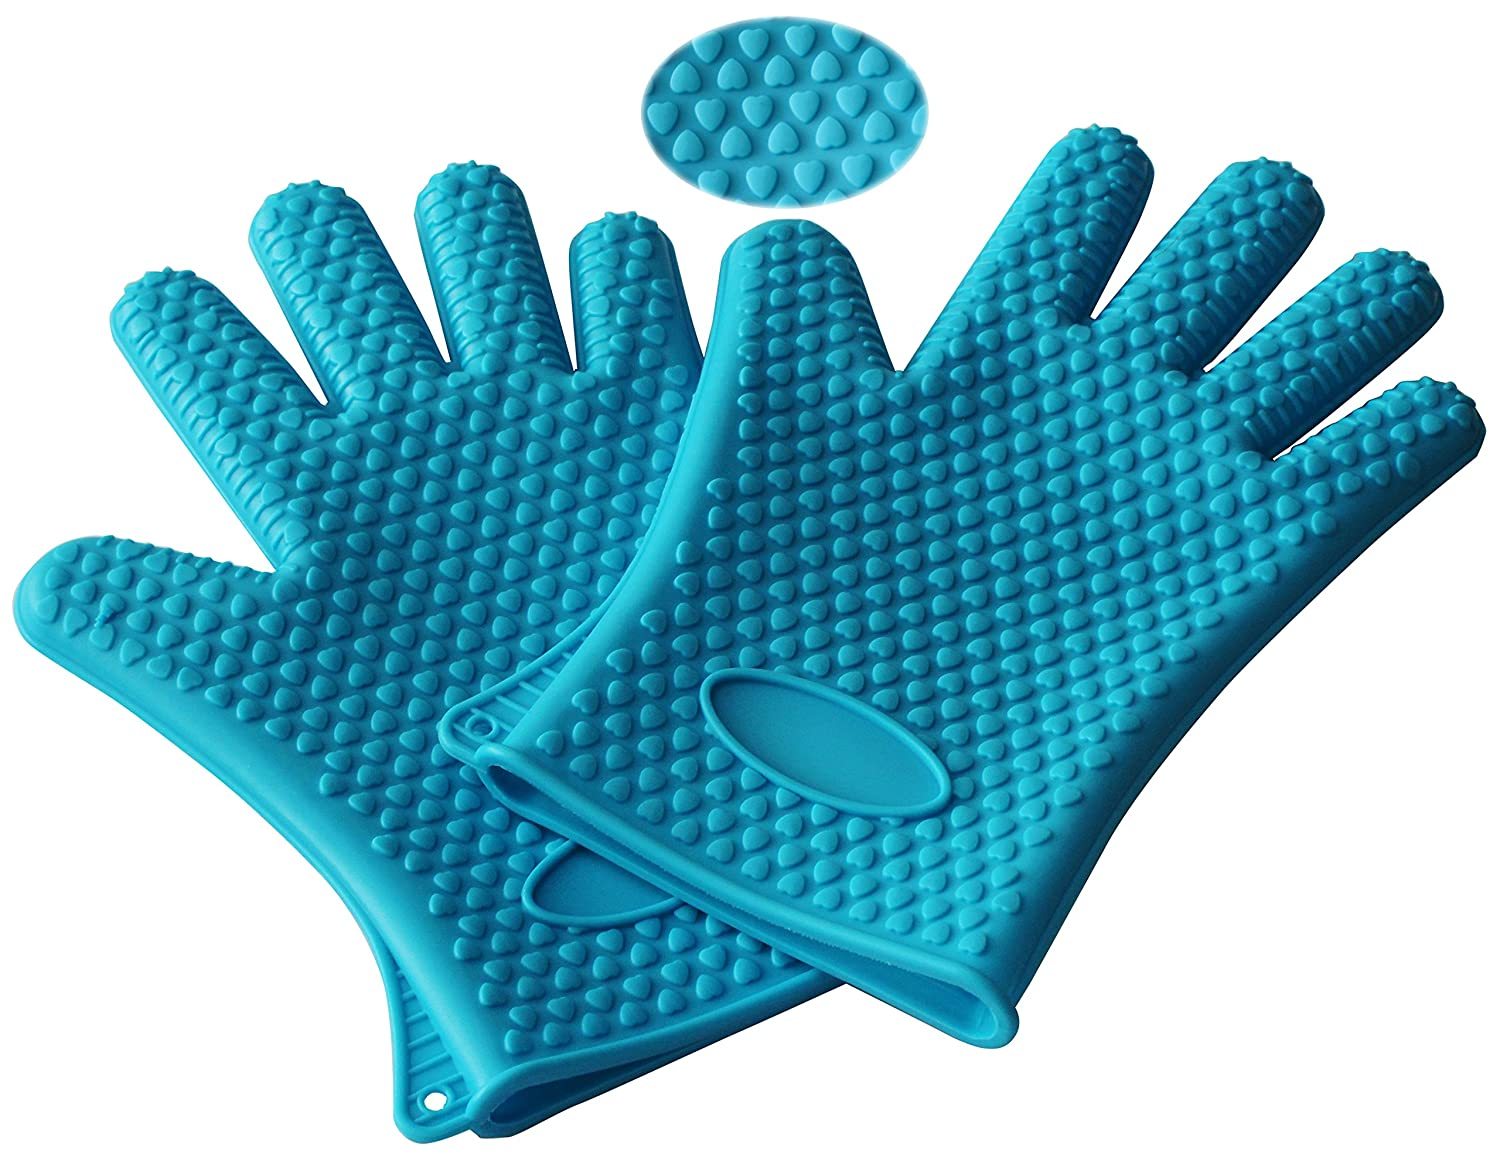 WARRAH Cooking Gloves Heat Resistant Silicone High Quality - One-size-fits-all Design Silicone Cooking Gloves - Heat Resistant Oven Mitt for Grilling, BBQ, Kitchen- 1 Pair Blue